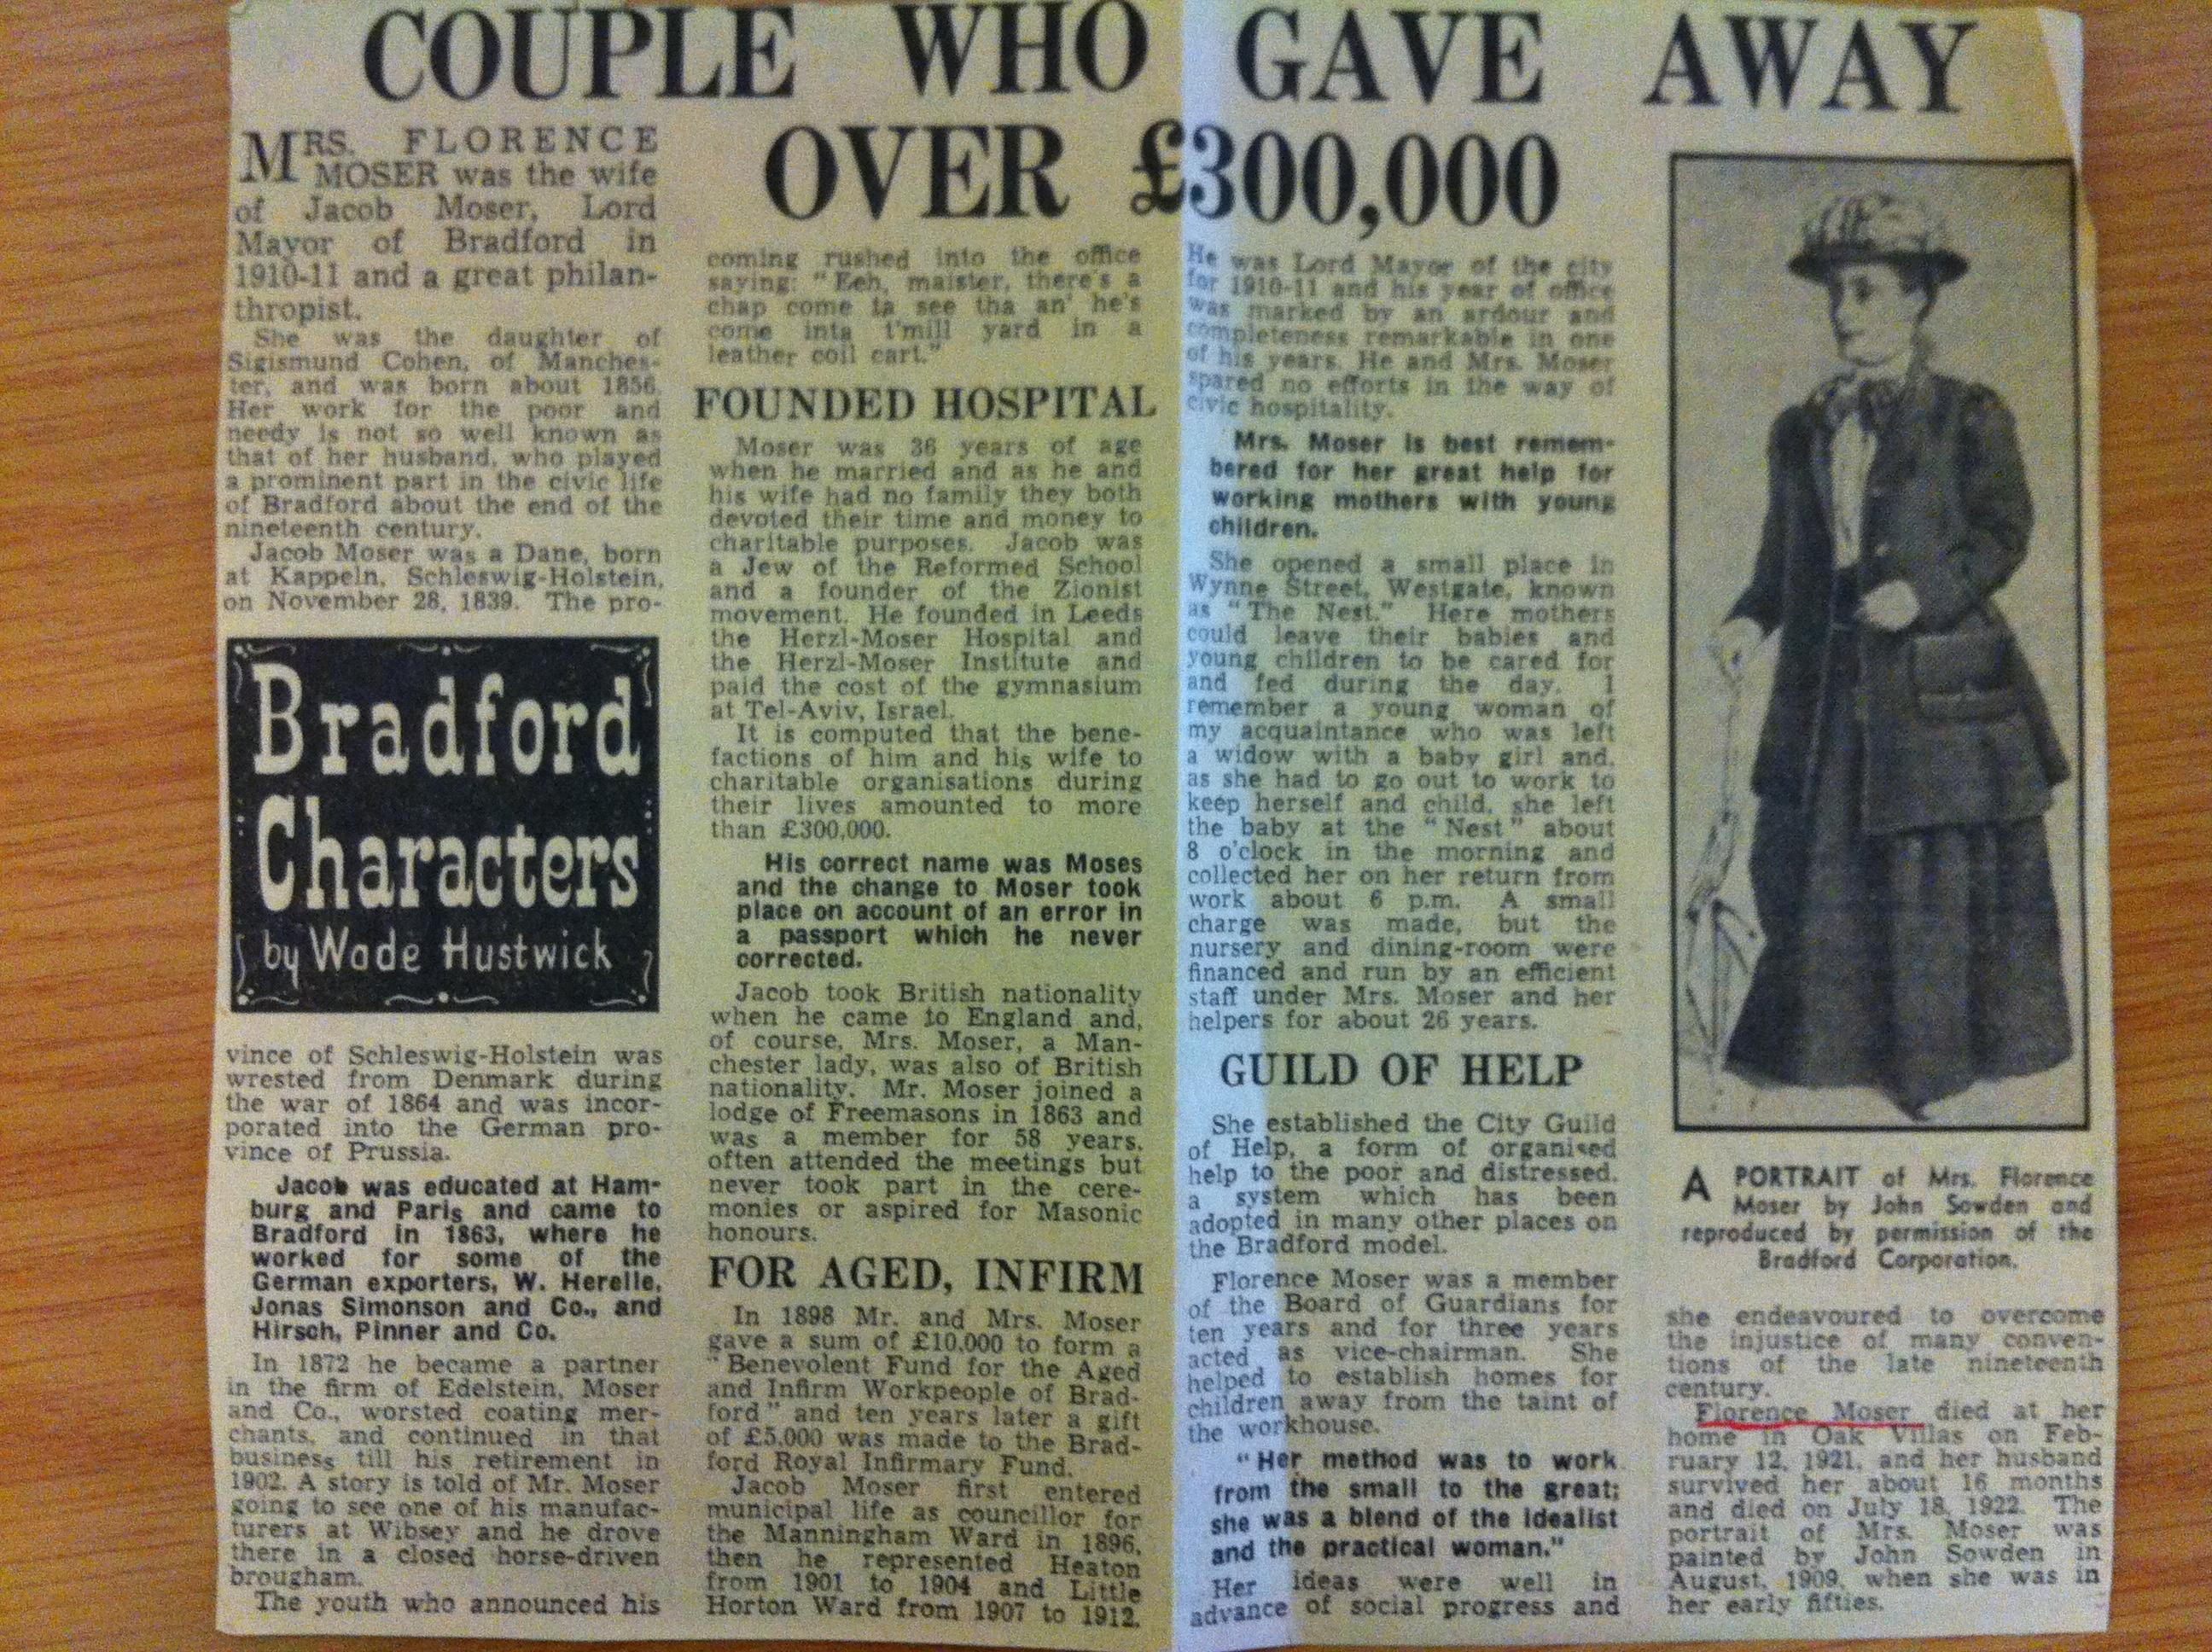 Florence Moser Telegraph & Argus July 2nd 1960 article in full